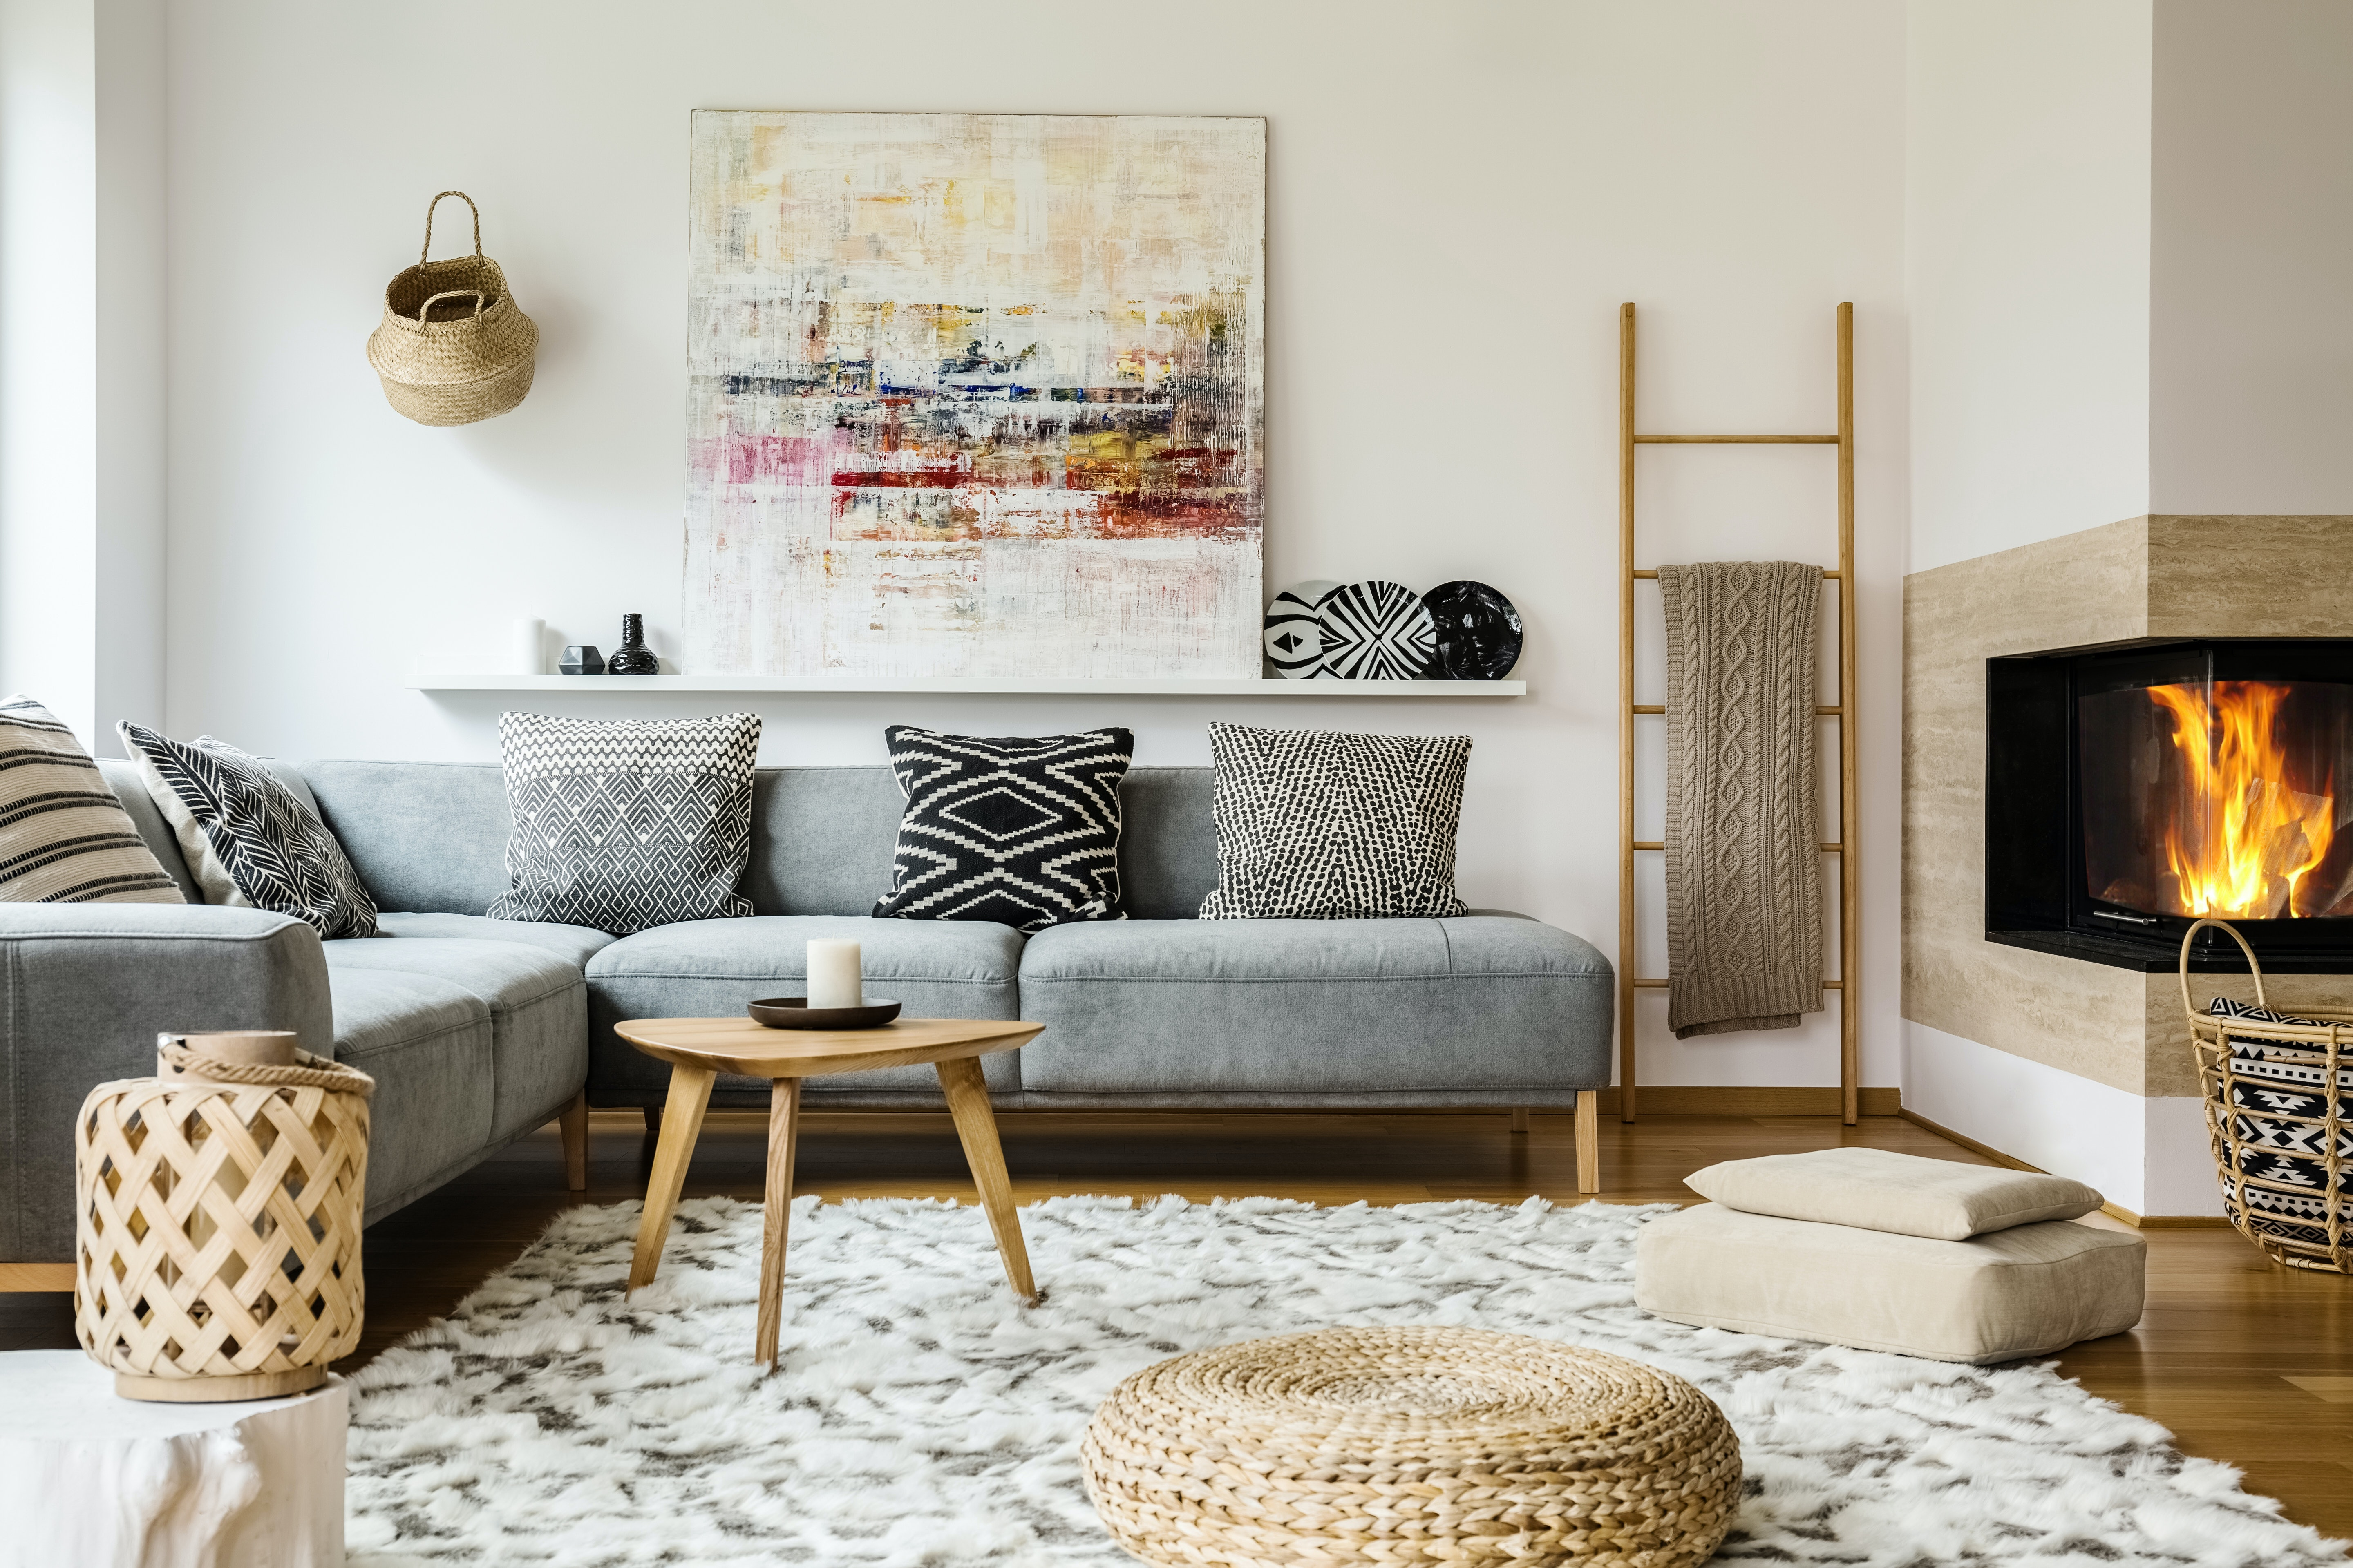 The 6 Living Room Design Mistakes To Avoid At All Costs, According To  Experts